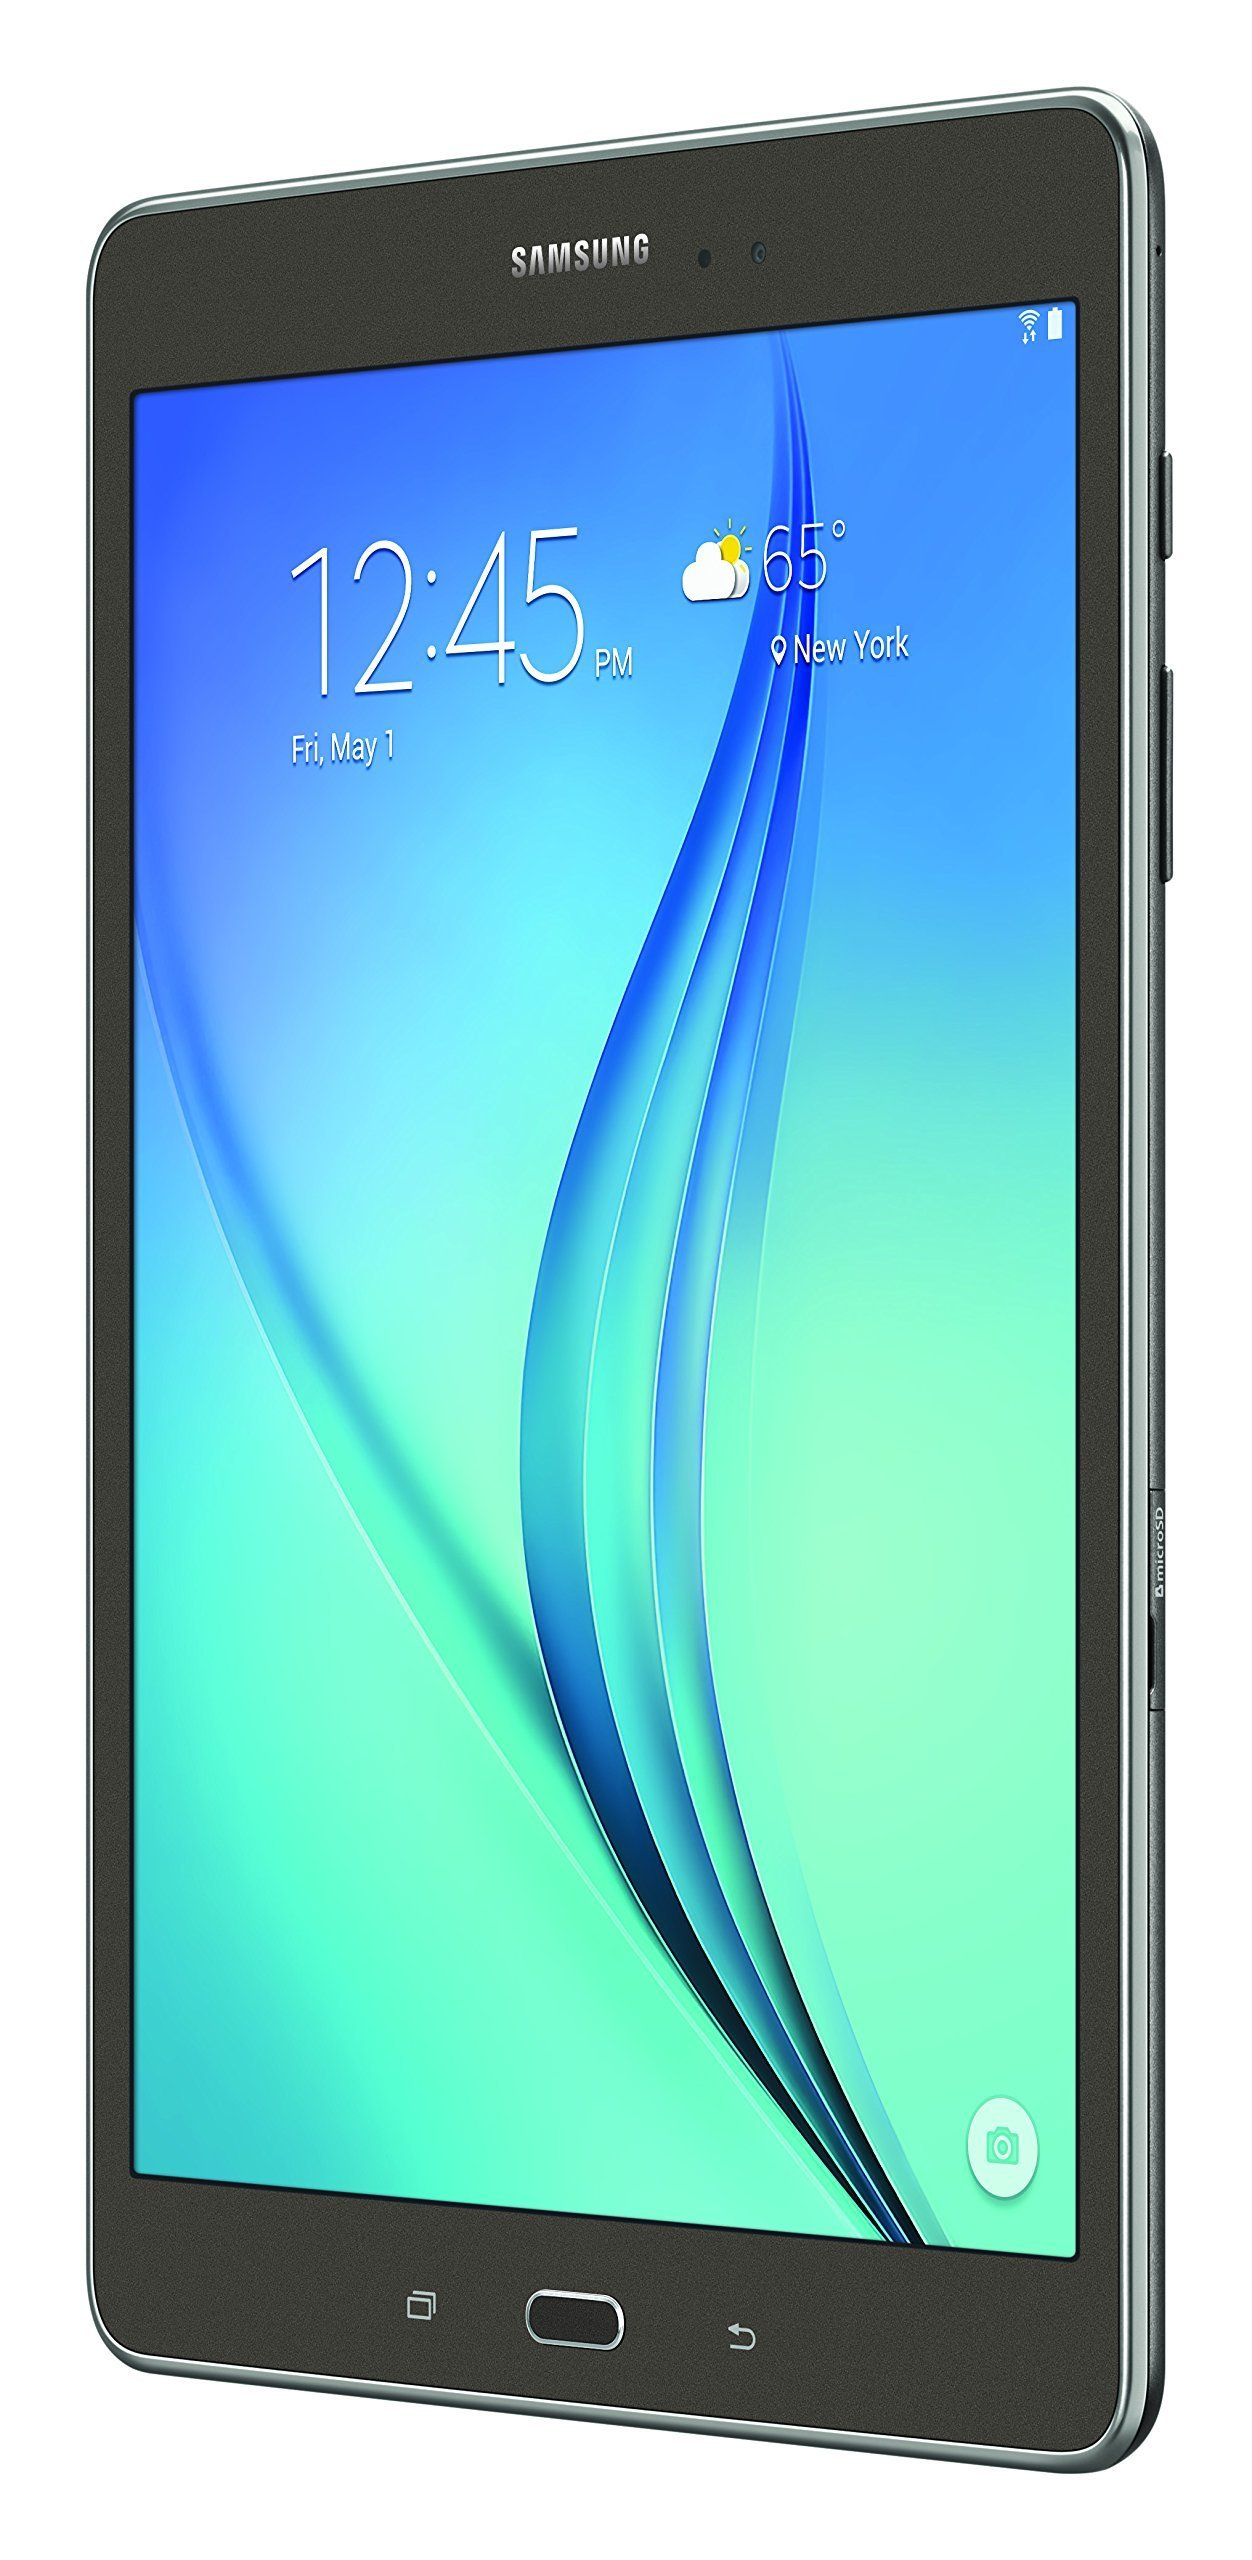 Samsung Galaxy Tab A 9.7-Inch Tablet (16 GB, Smoky Titanium) by Samsung